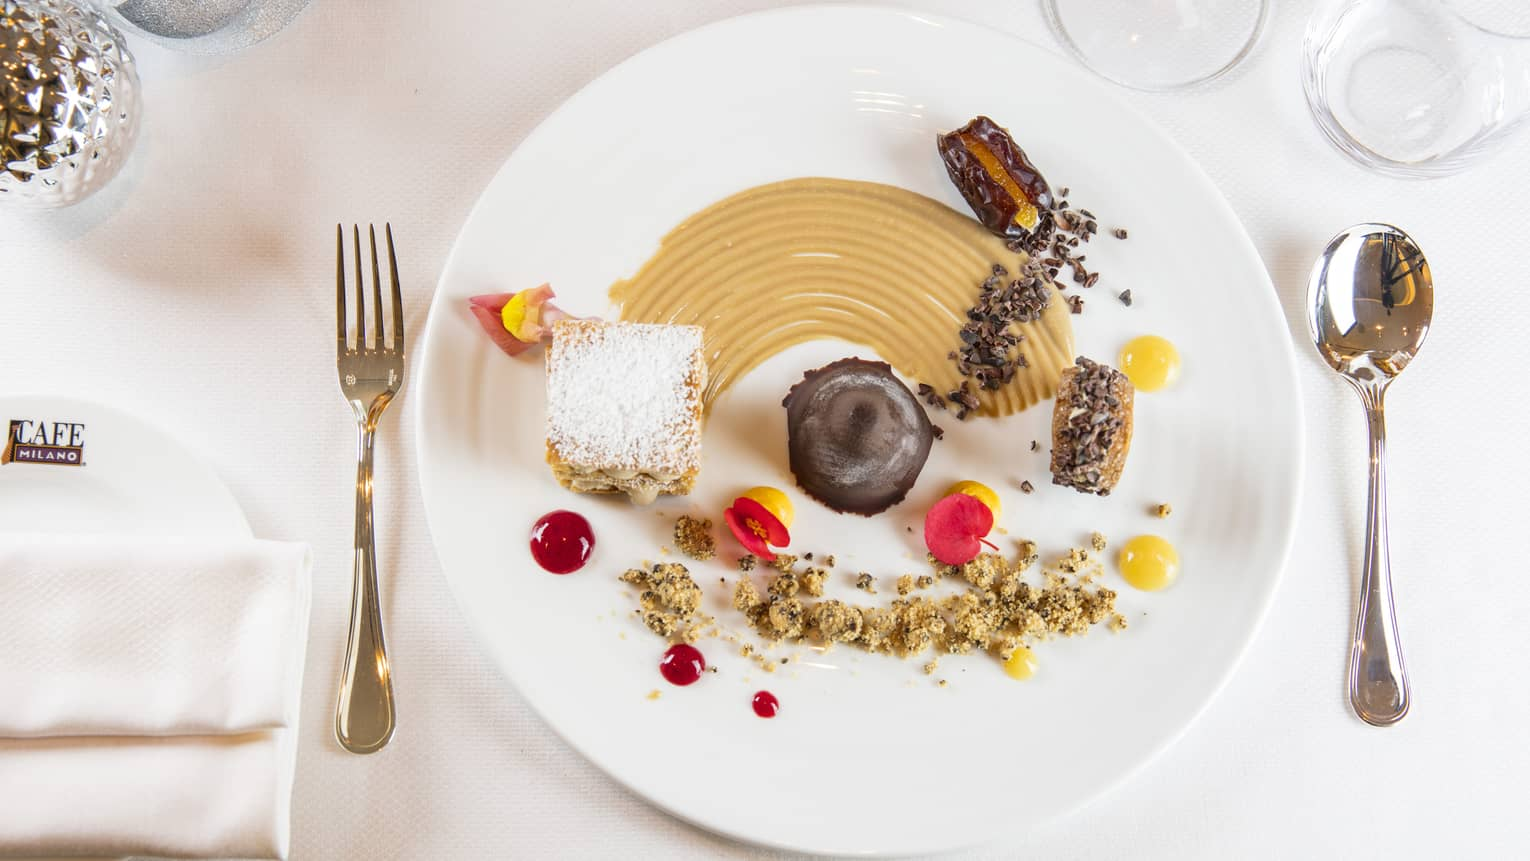 A dessert plate with various decadent mini desserts on it, on a clean white plate and white table cloth